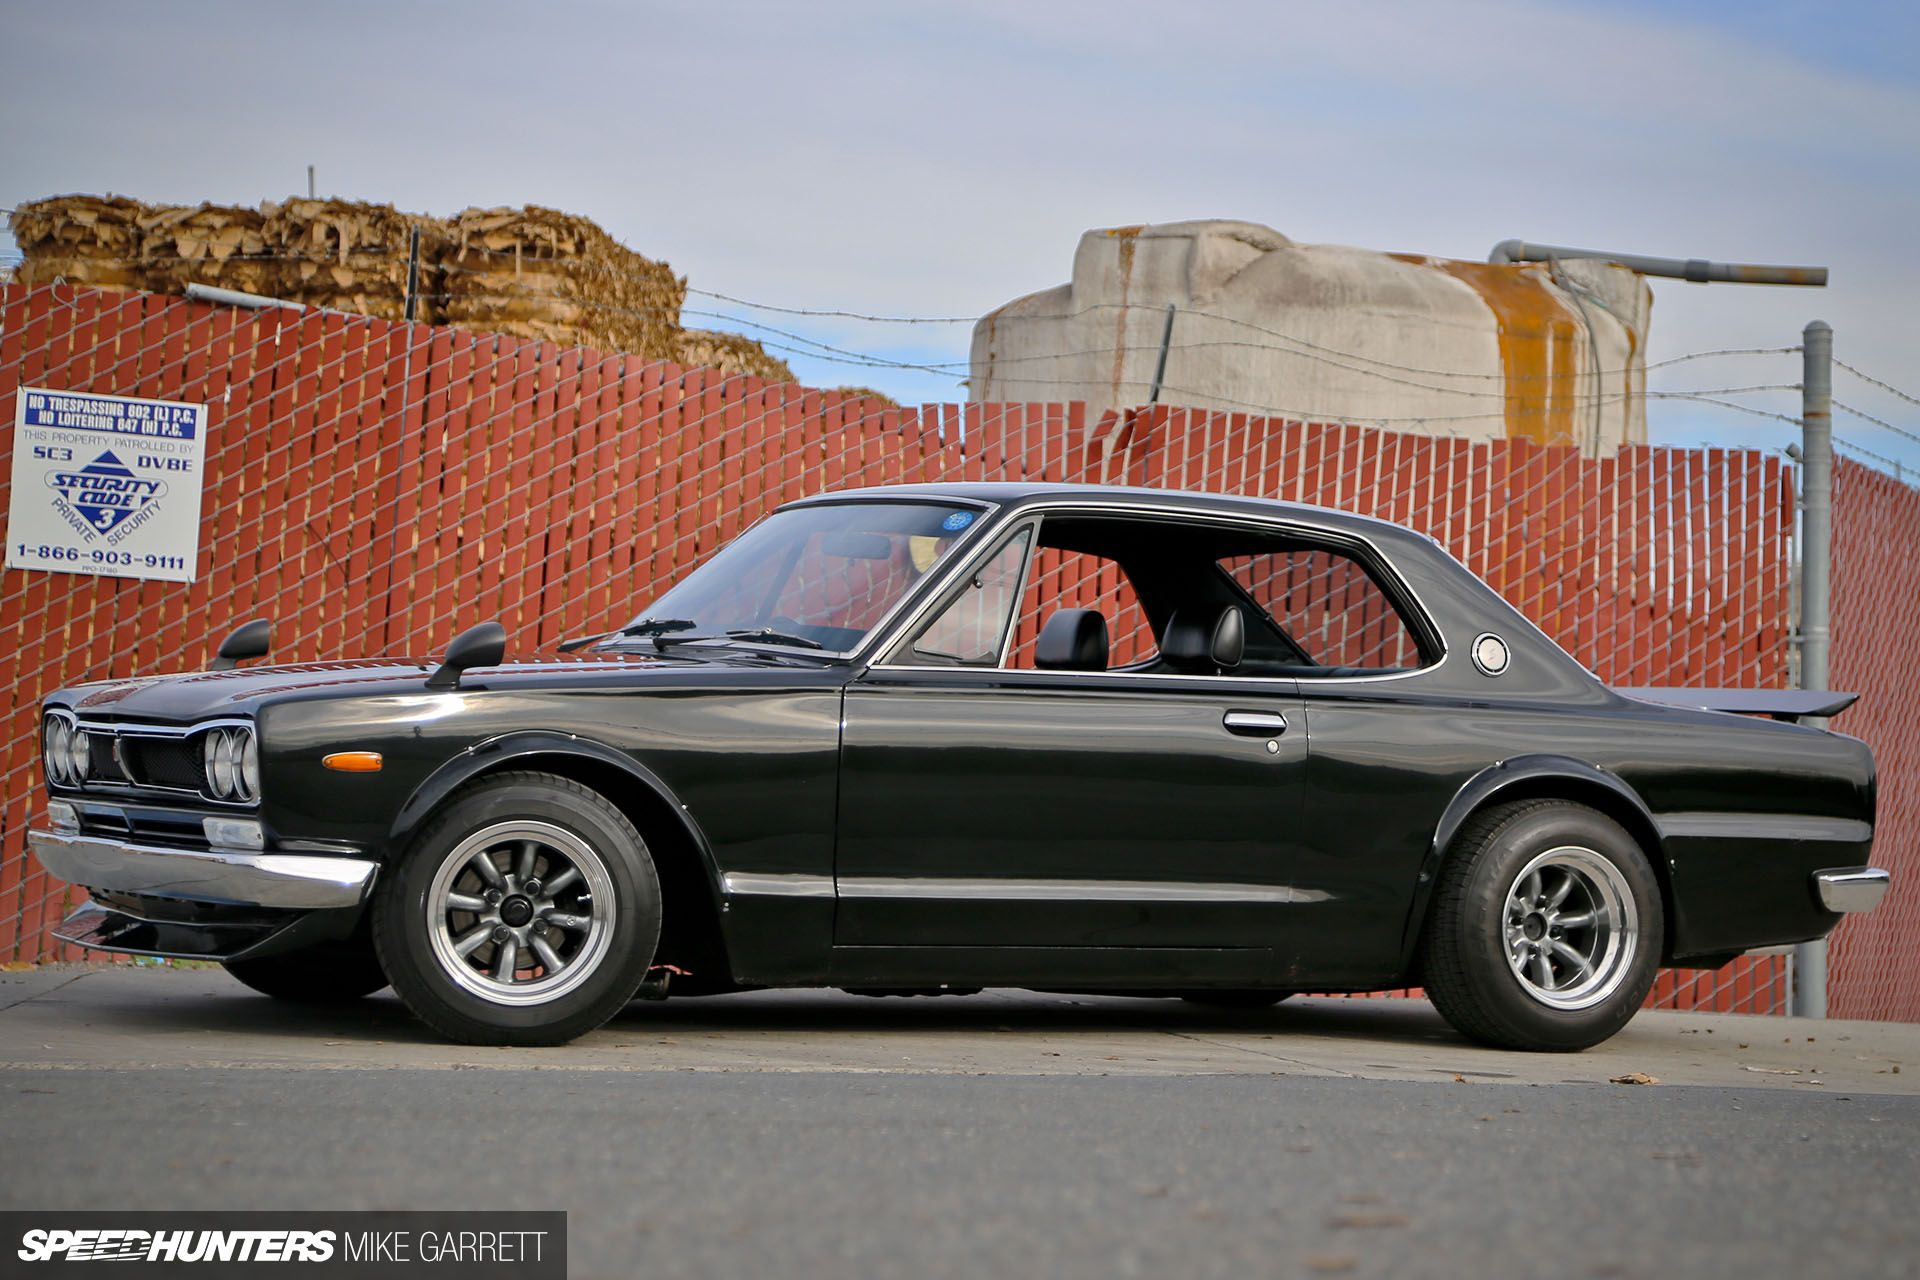 Back In Black A Hakosuka Built The Old School Way